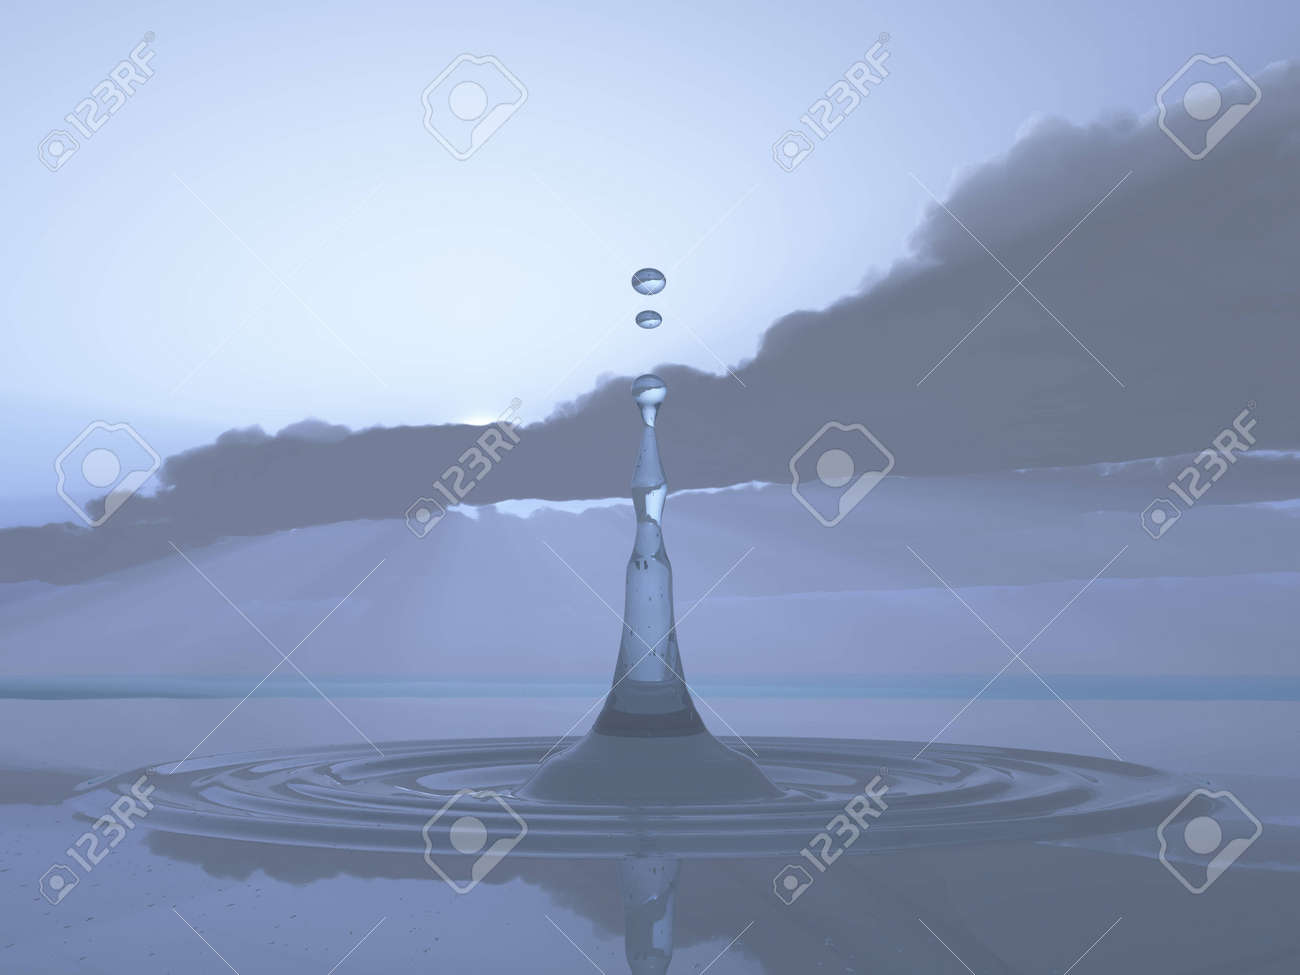 Rain Clouds With The First Drop Of Rain Stock Photo Picture And Royalty Free Image Image 10712053